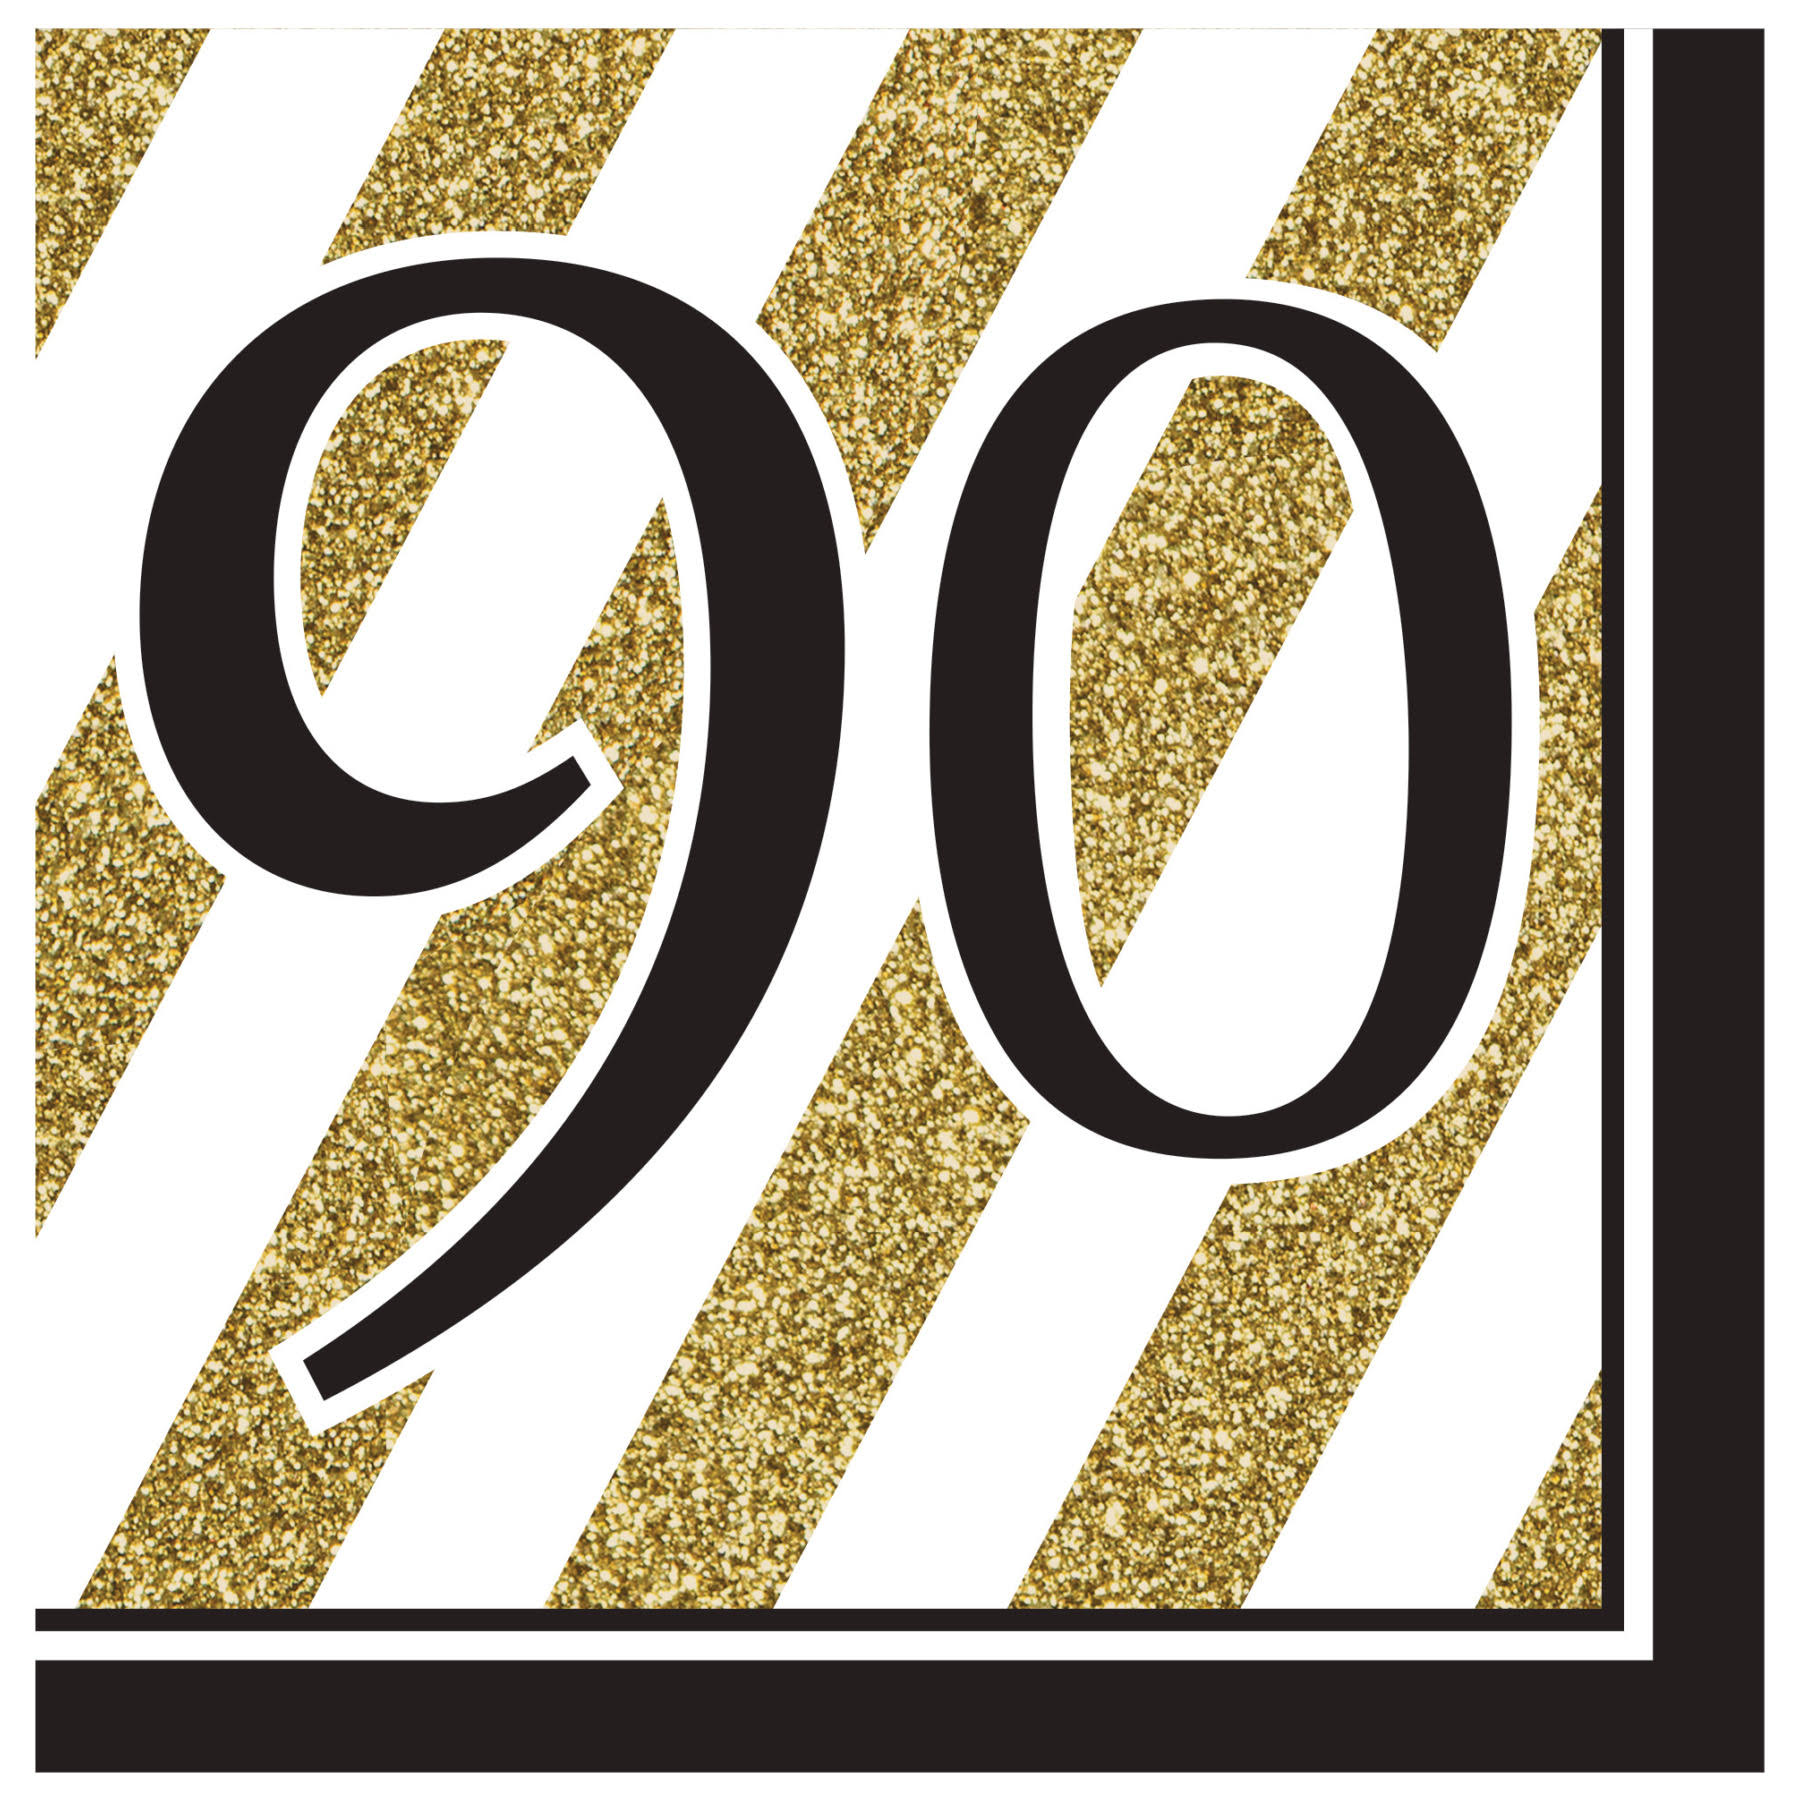 Creative Converting 90th Birthday Lunch Napkins - Black and Gold, 2 Ply, 16pk